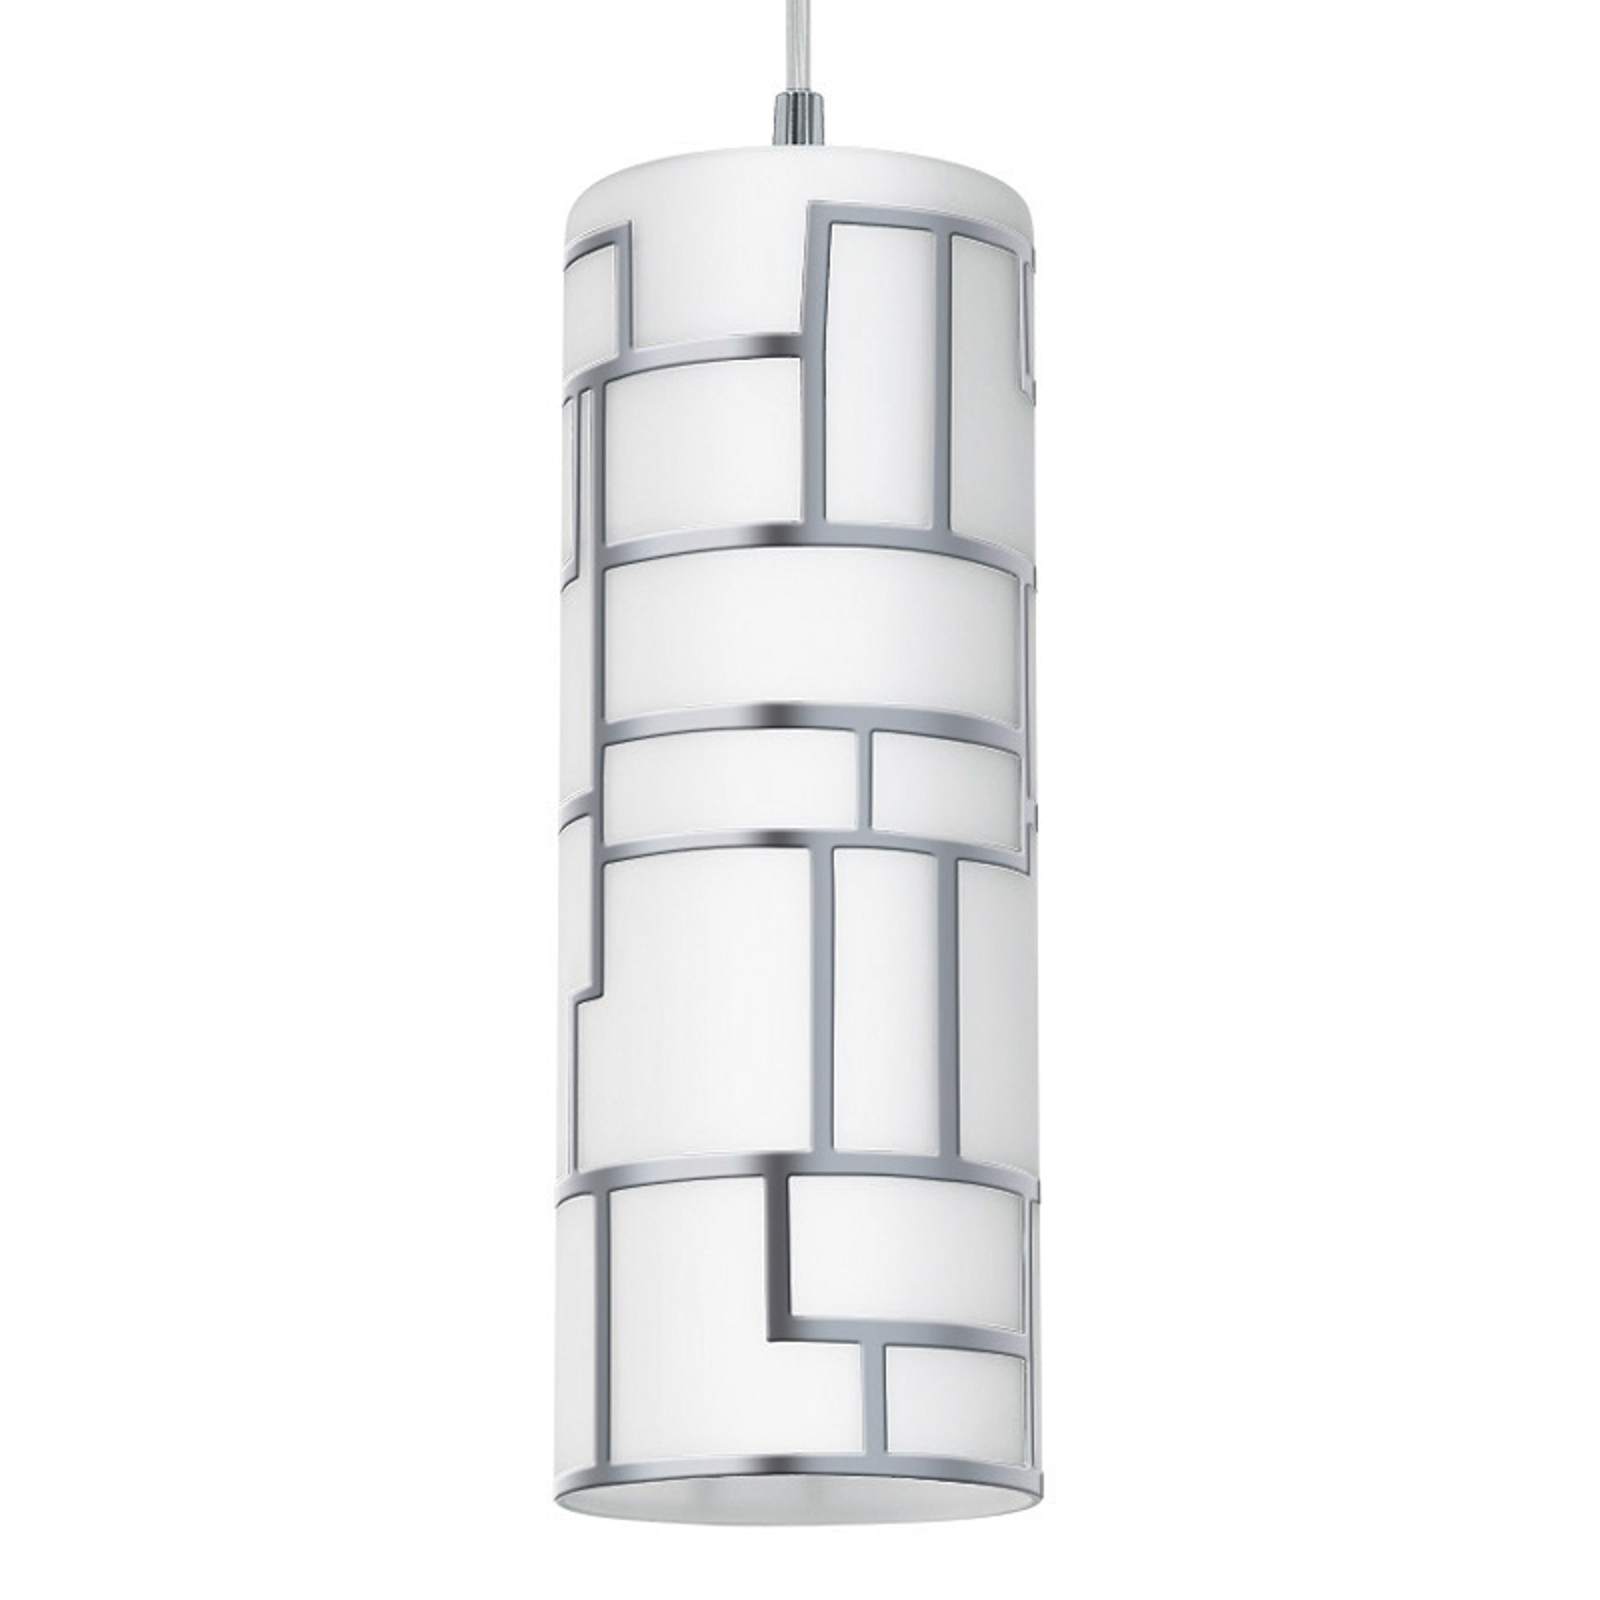 Slim Bayman pendant light with linear design_3031646_1